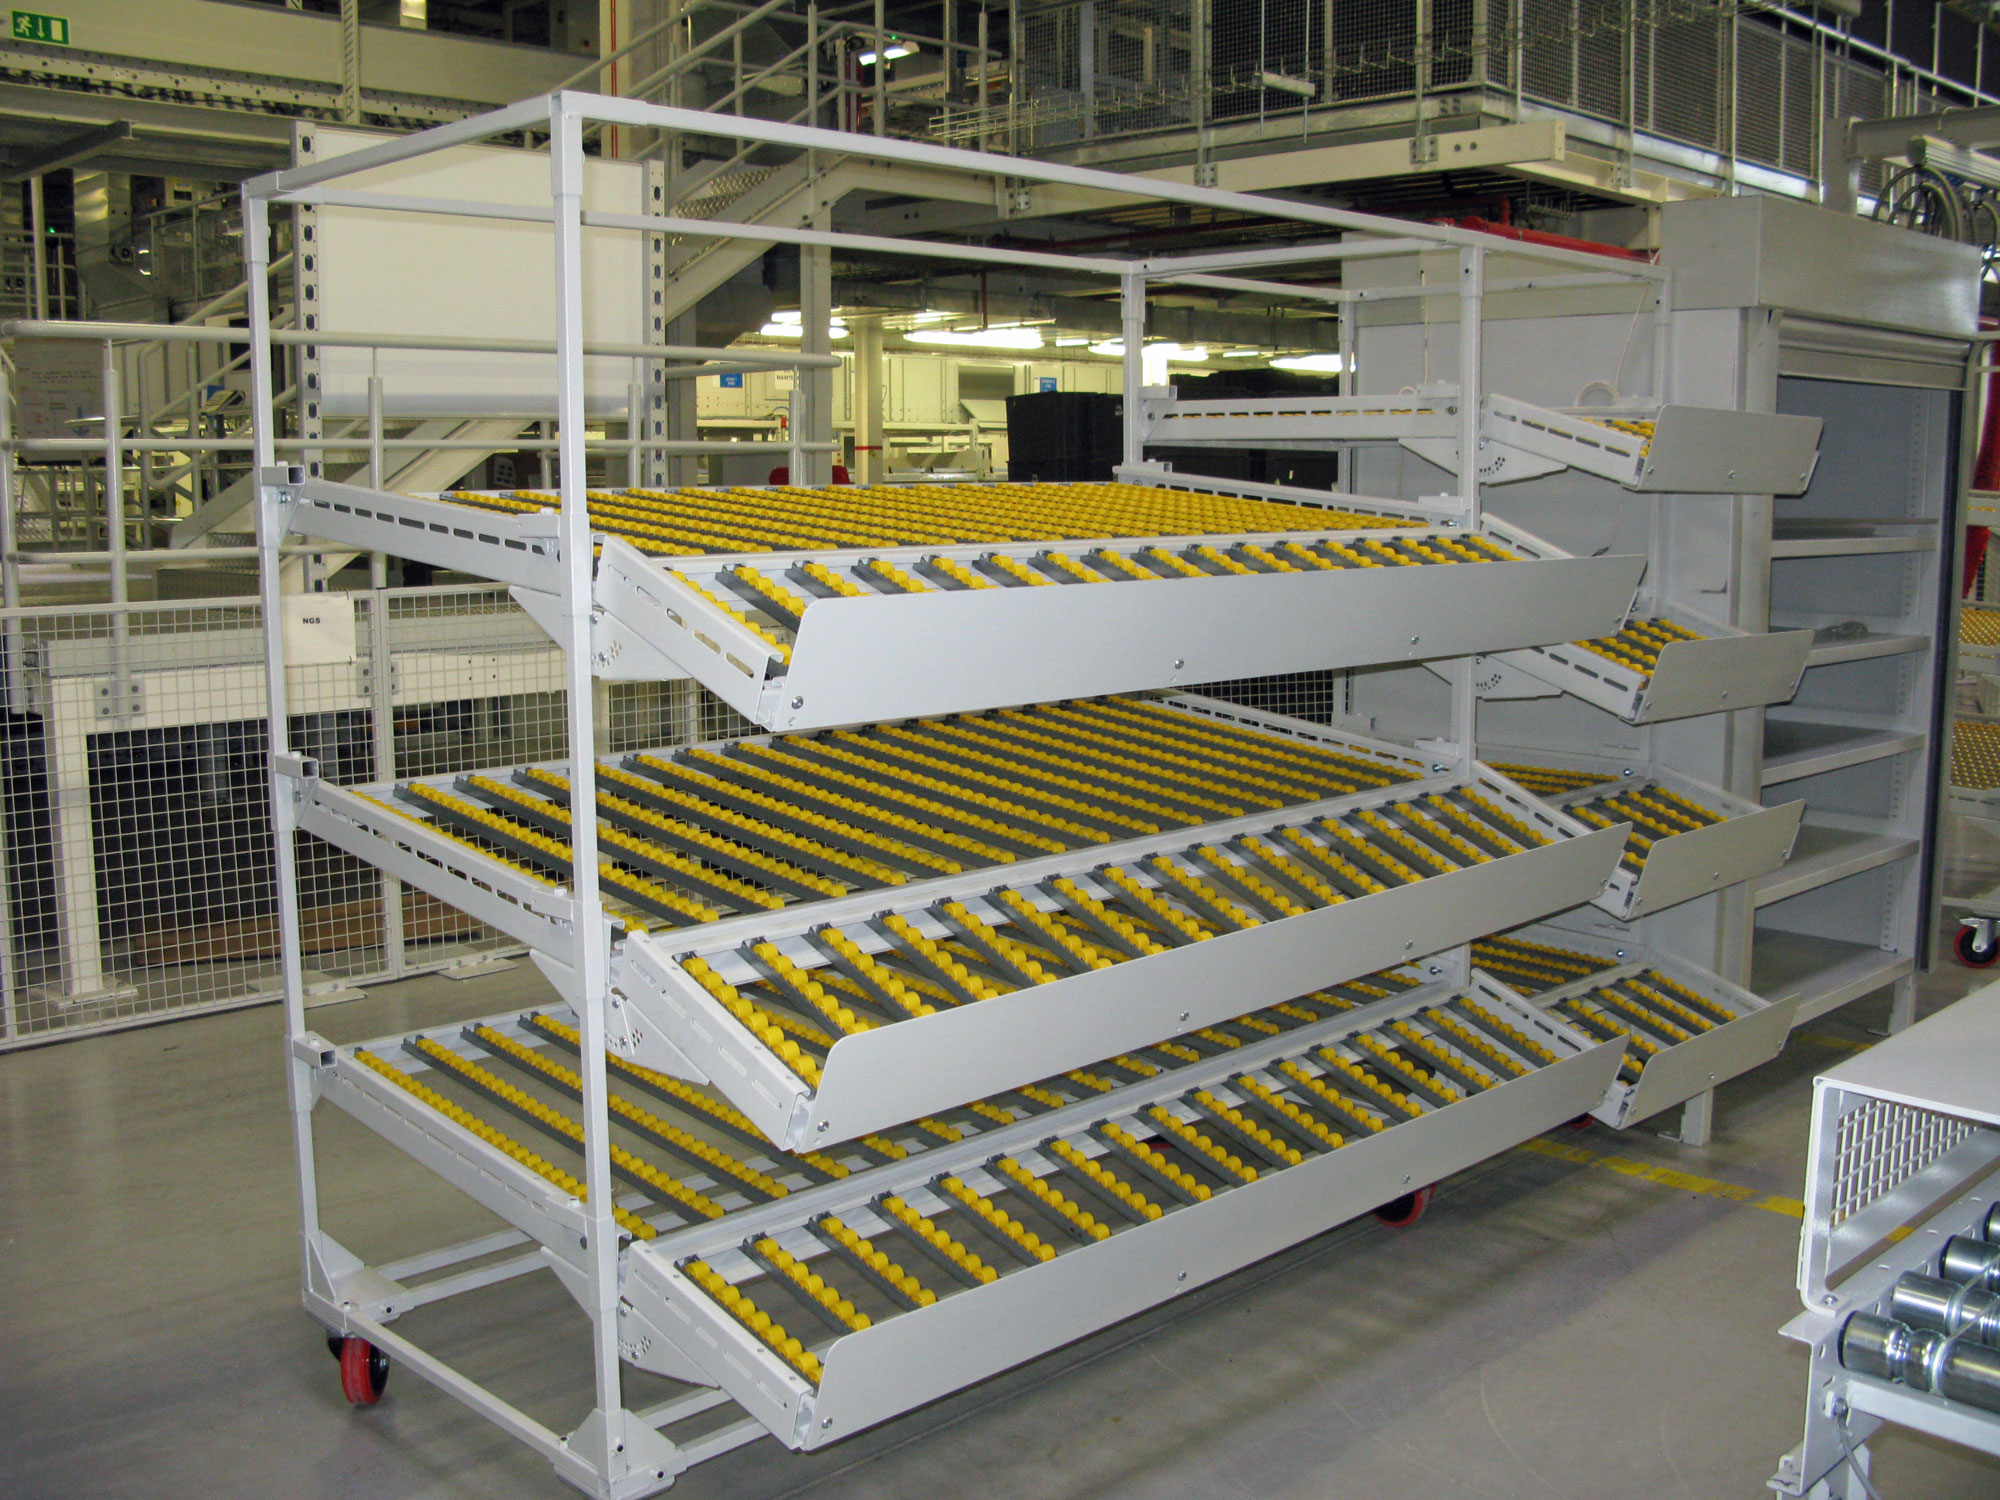 Image showing a trolley with yellow plastic conveyor bearing wheels